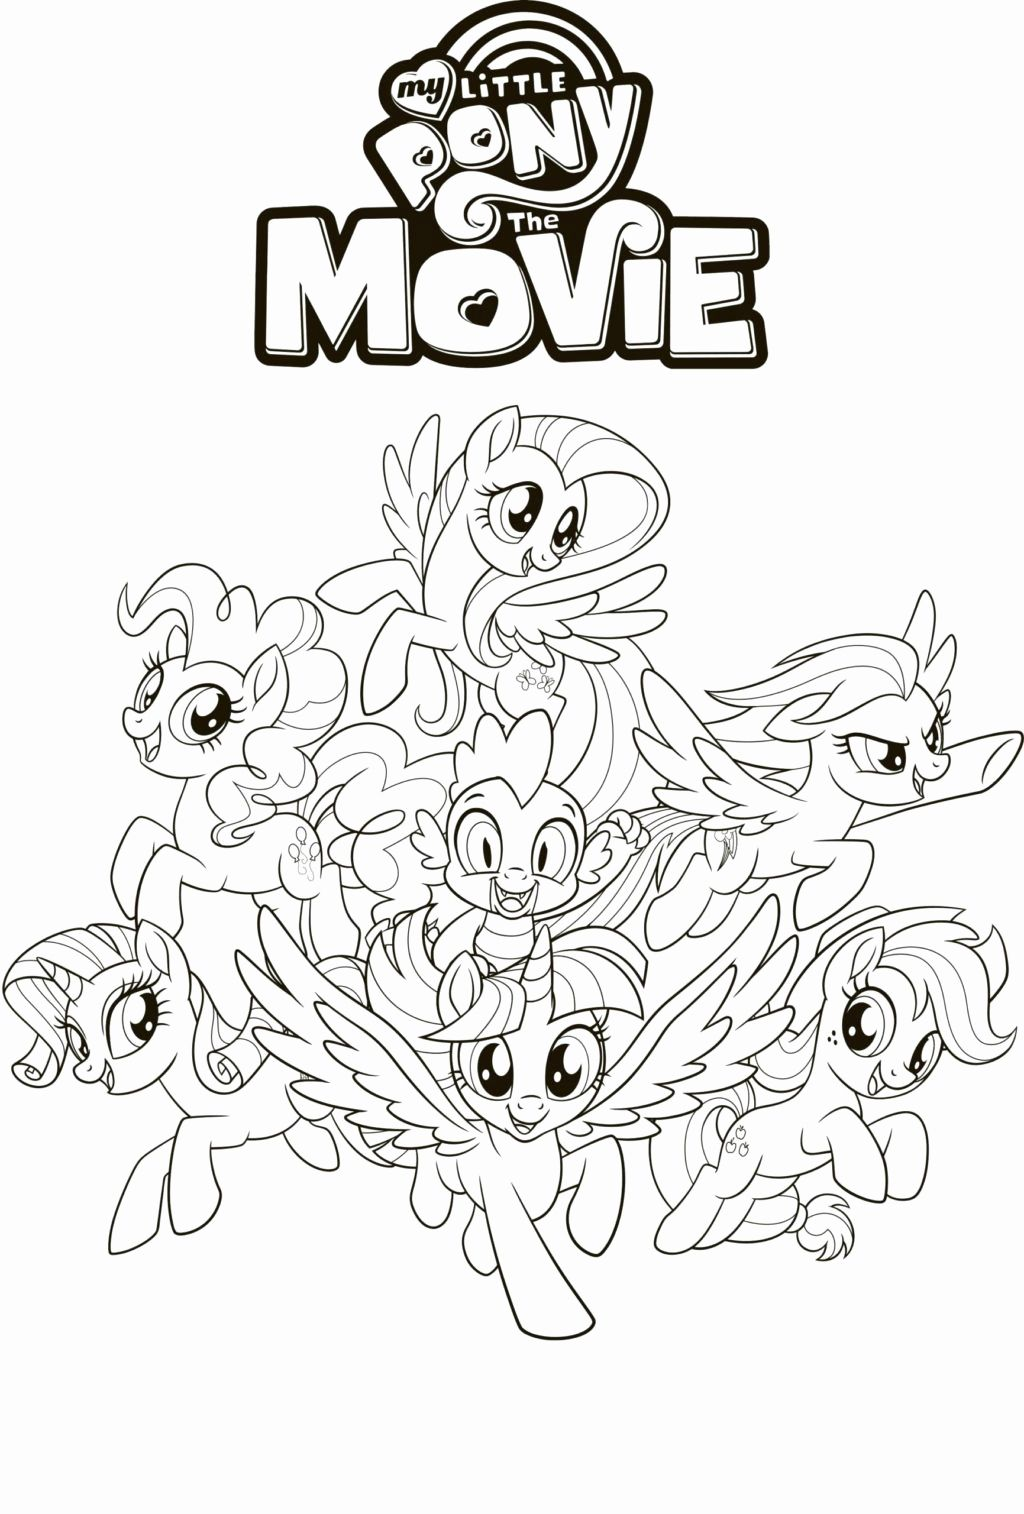 Kids Coloring Rainbow Dash Pages In 2020 My Little Pony Coloring My Little Pony Movie My Little Pony Characters